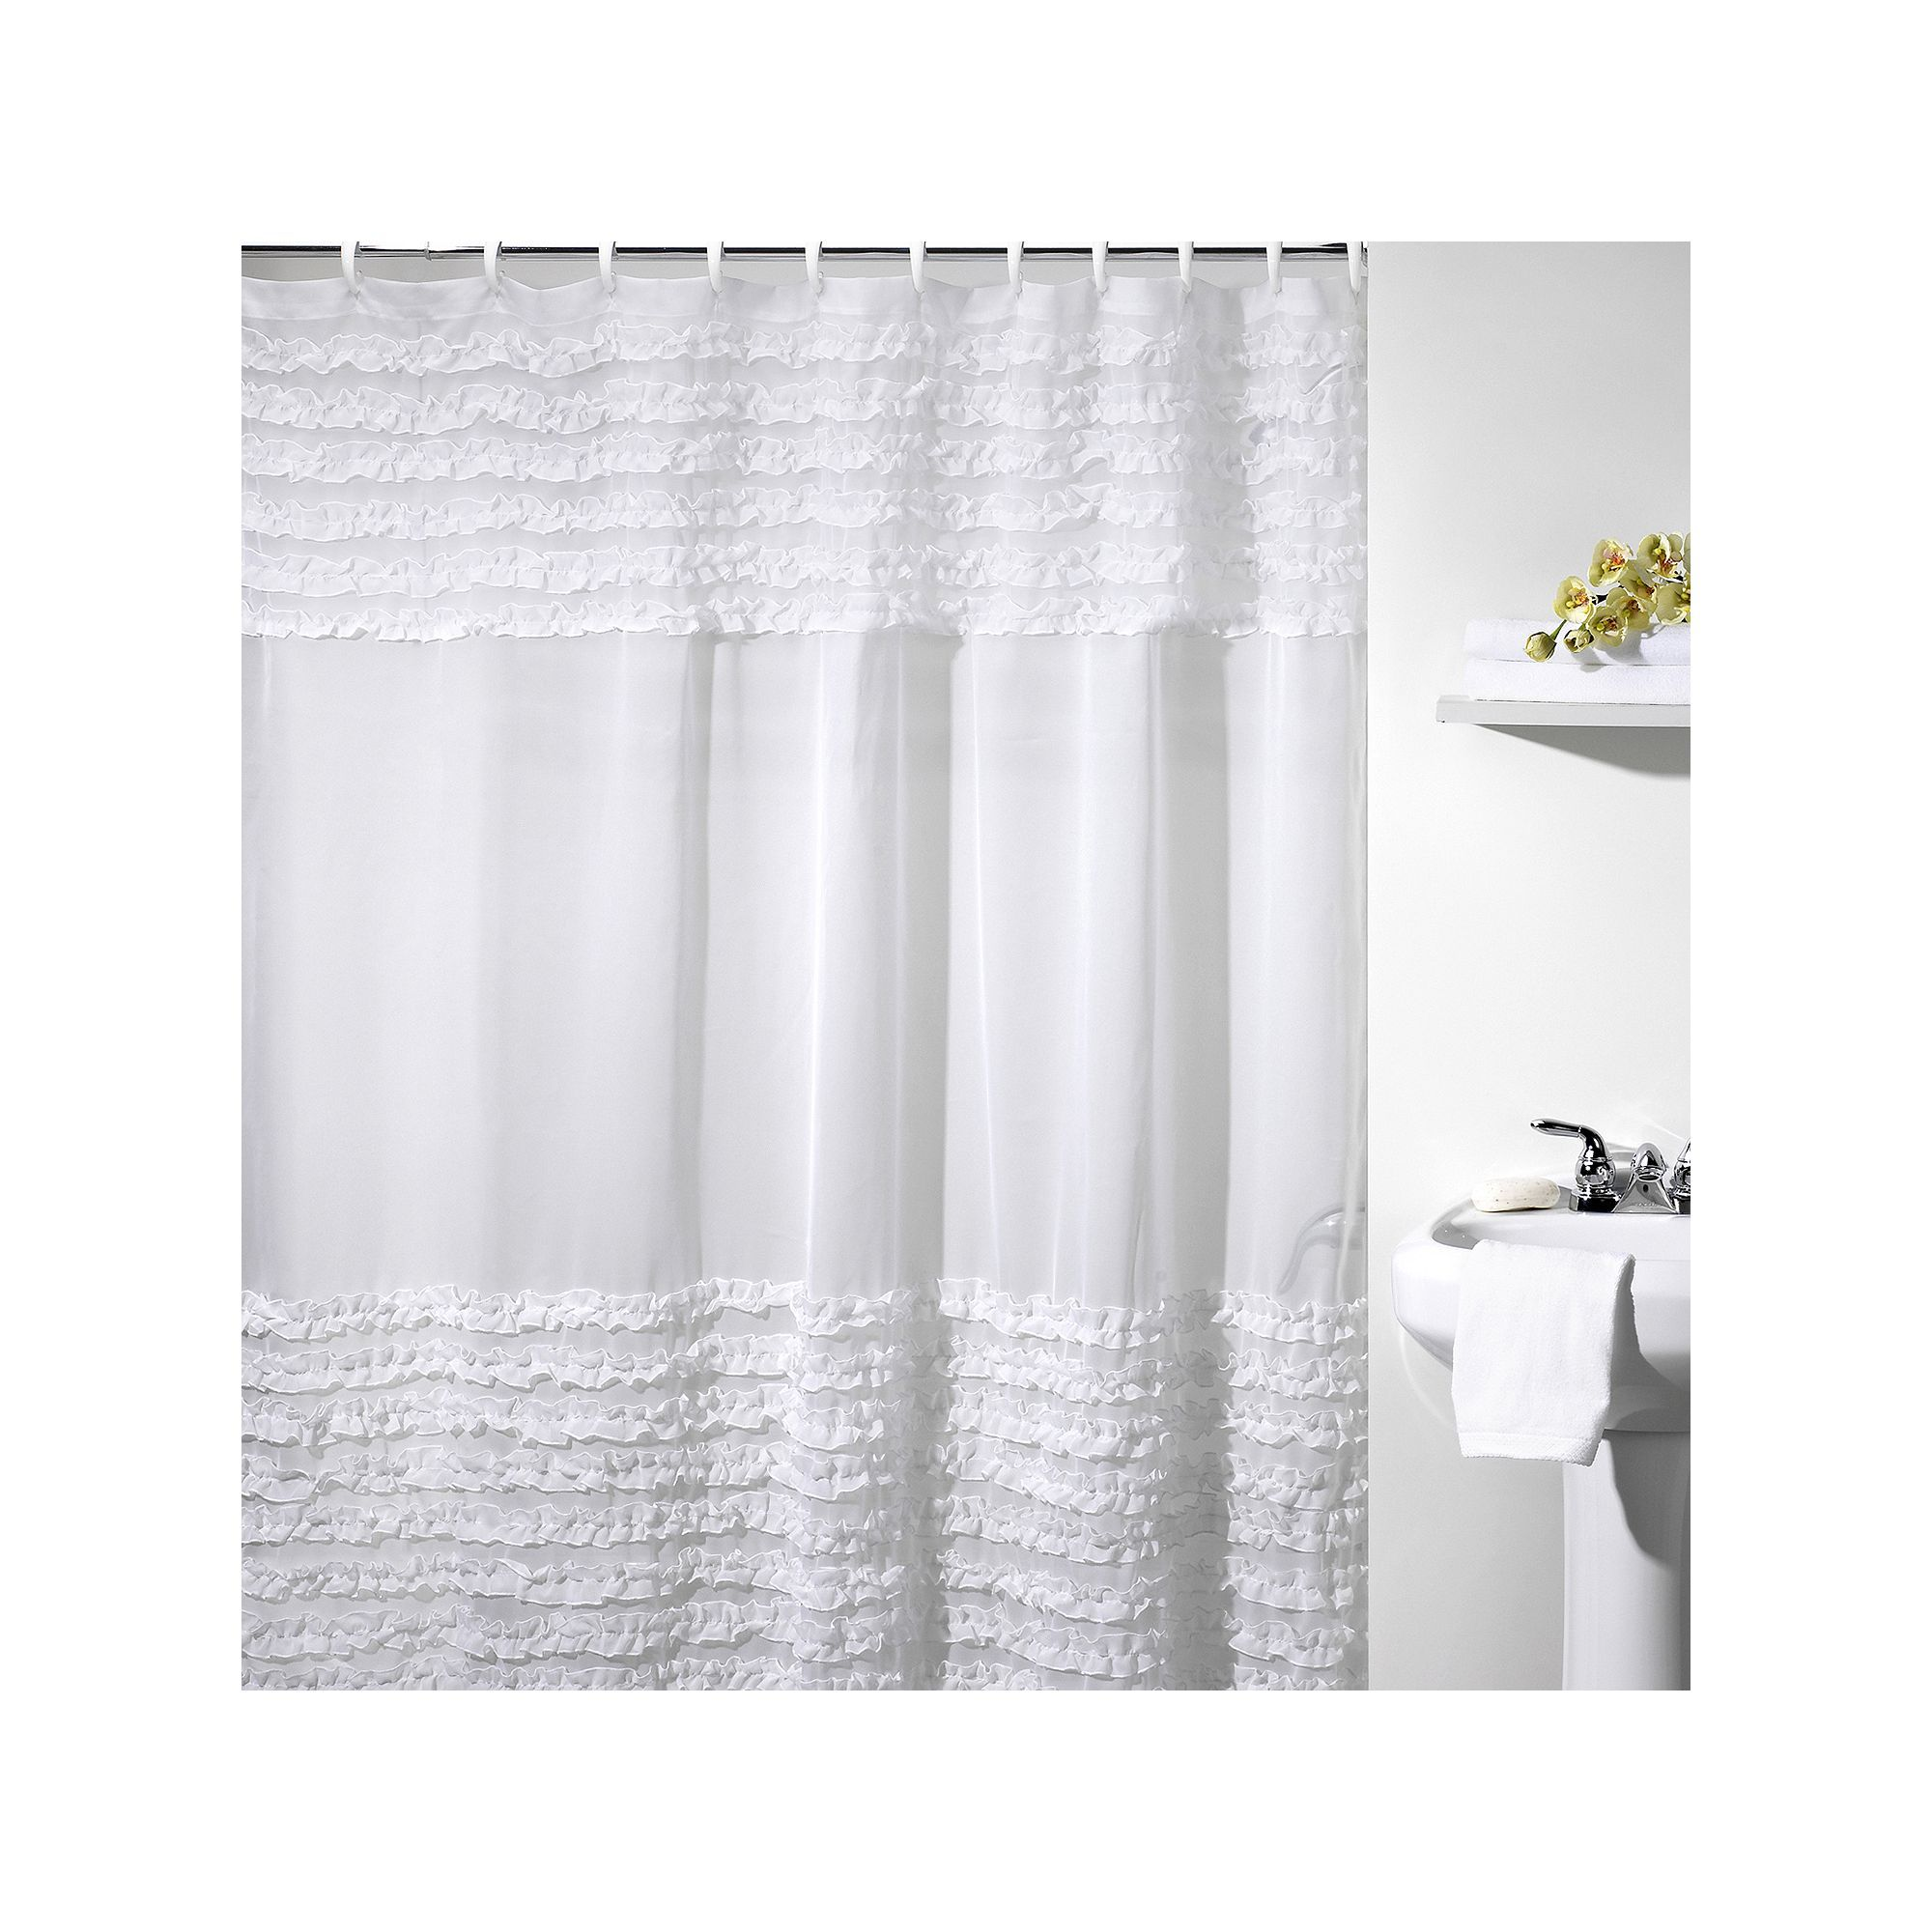 Creative Bath Ruffles Fabric Shower Curtain White